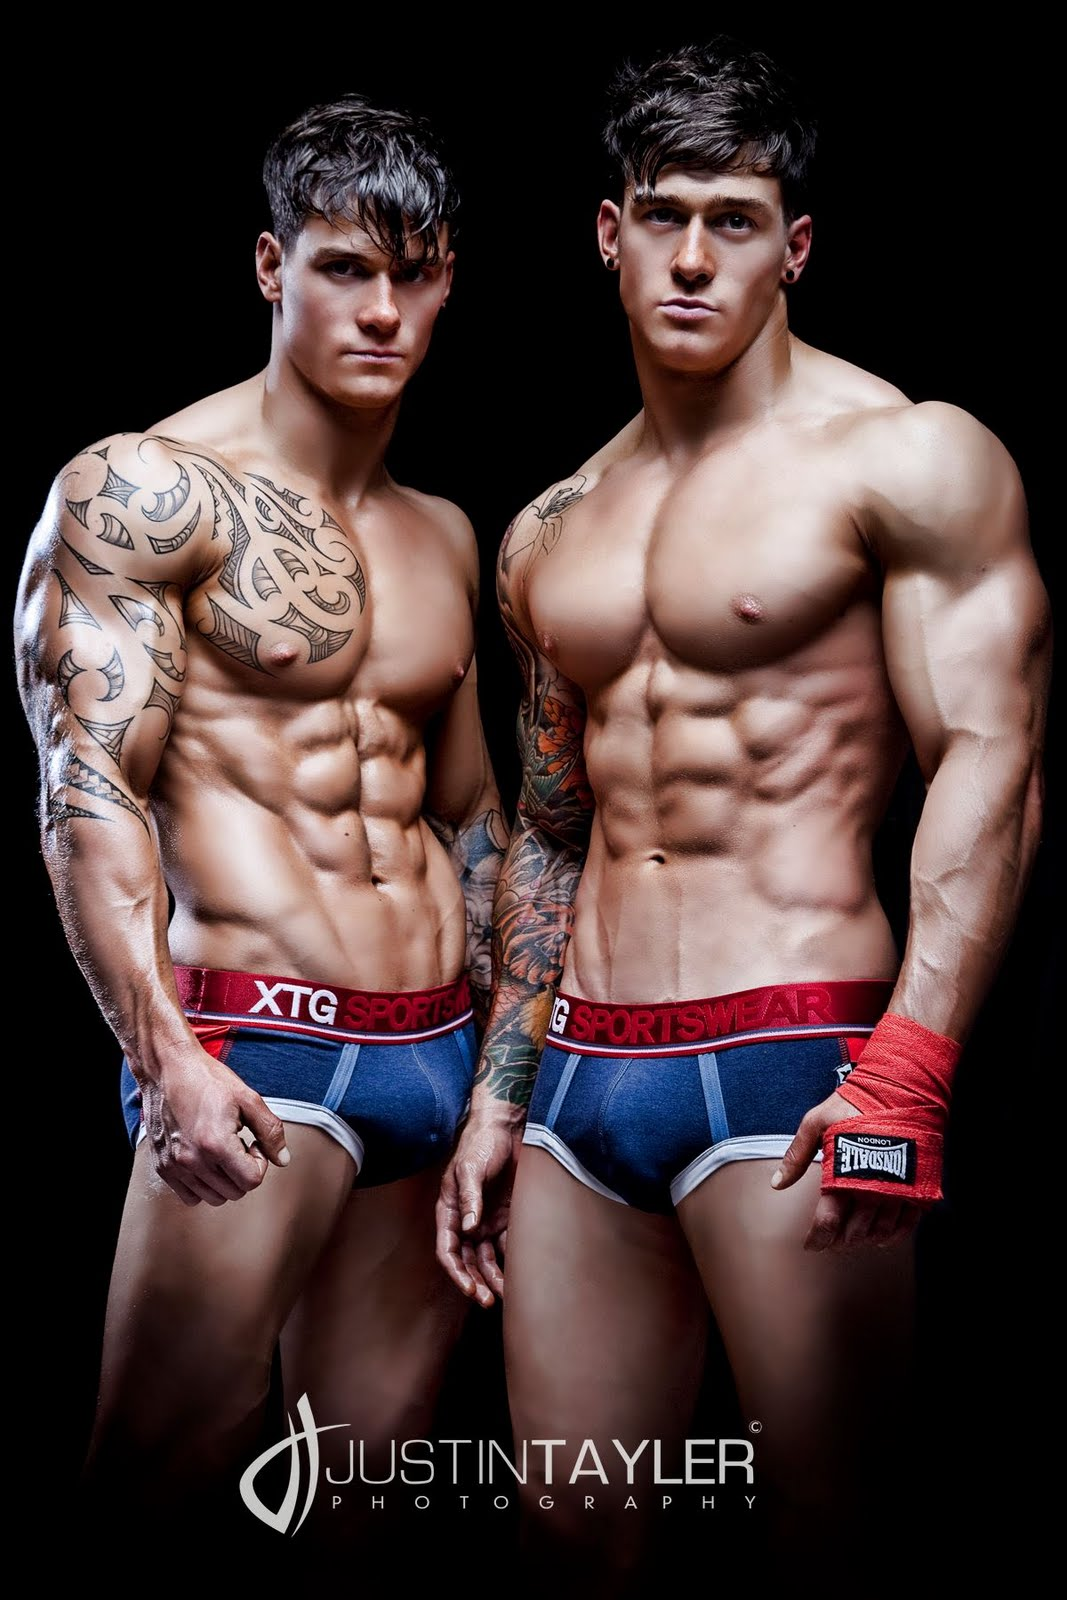 Harrison Twins Models http://workoutinspiration.blogspot.com/2011/12/amazing-harrison-twins.html